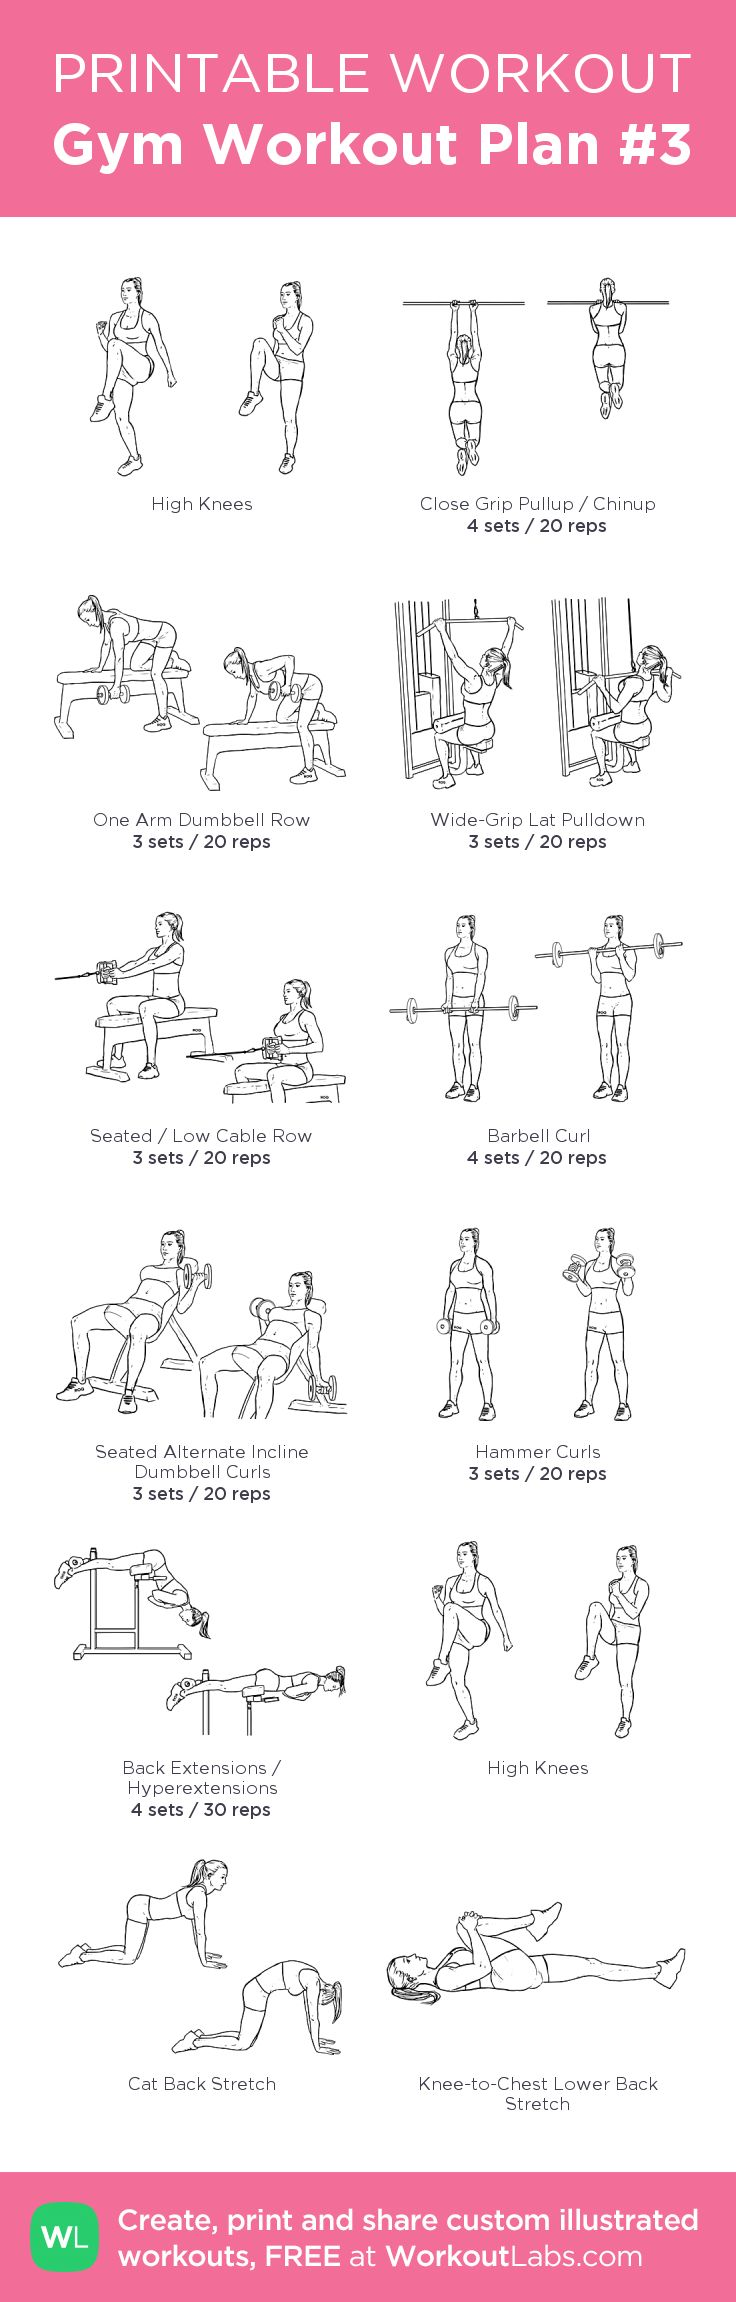 Gym Workout Plan #3: Instead of high knees do 5' warm up on treadmill, and at the end do 20' HIIT on treadmill followed by 5' low intensity for cool down before stretching. my custom printable workout by @WorkoutLabs #workoutlabs #customworkout